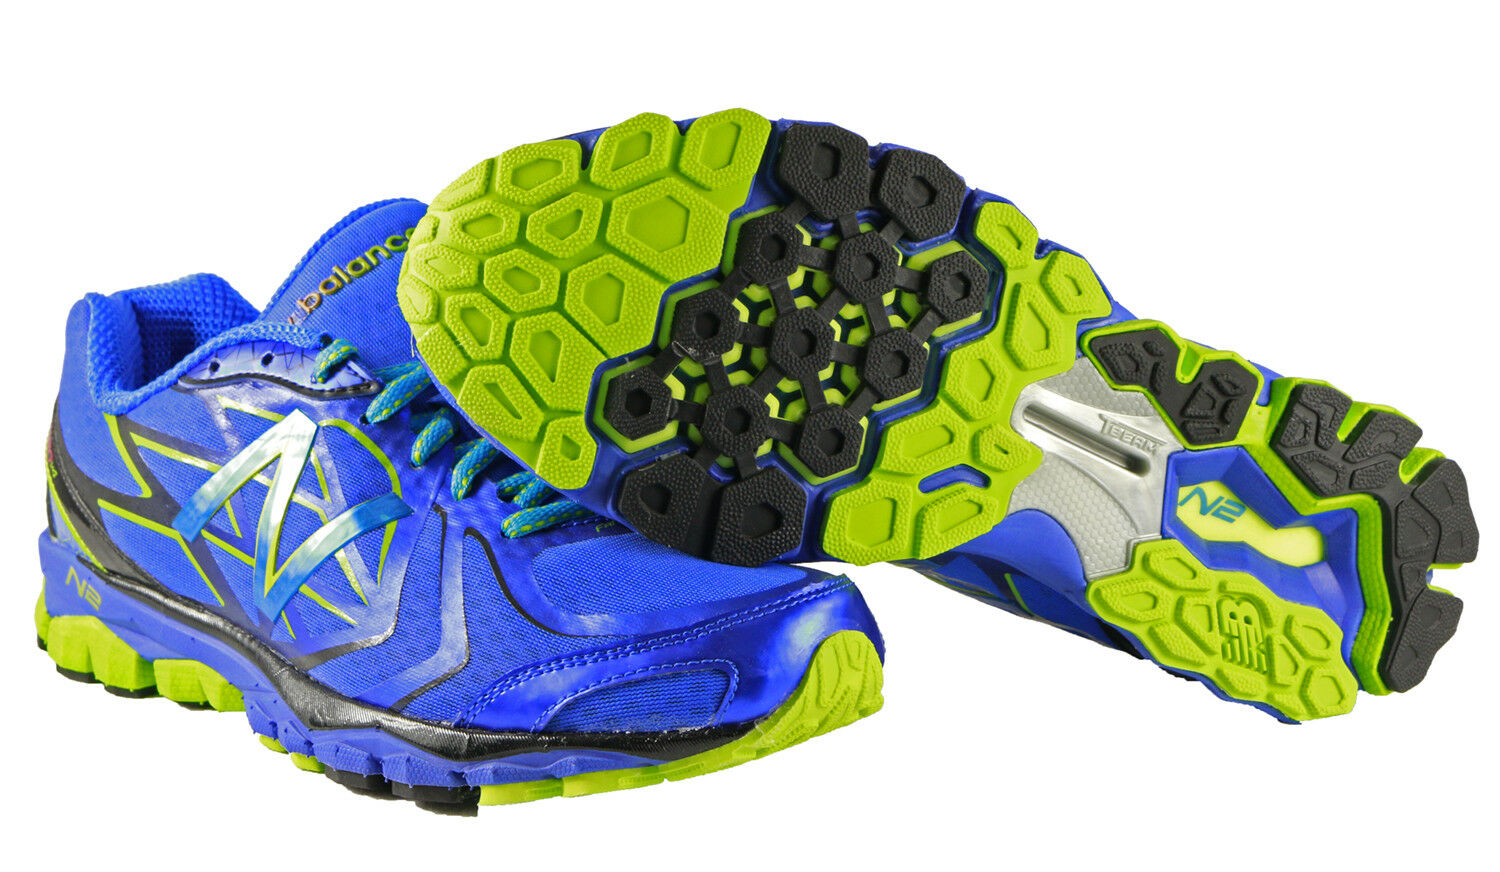 New Balance Mens 1080BL4 Running Course shoes in bluee Black Lime